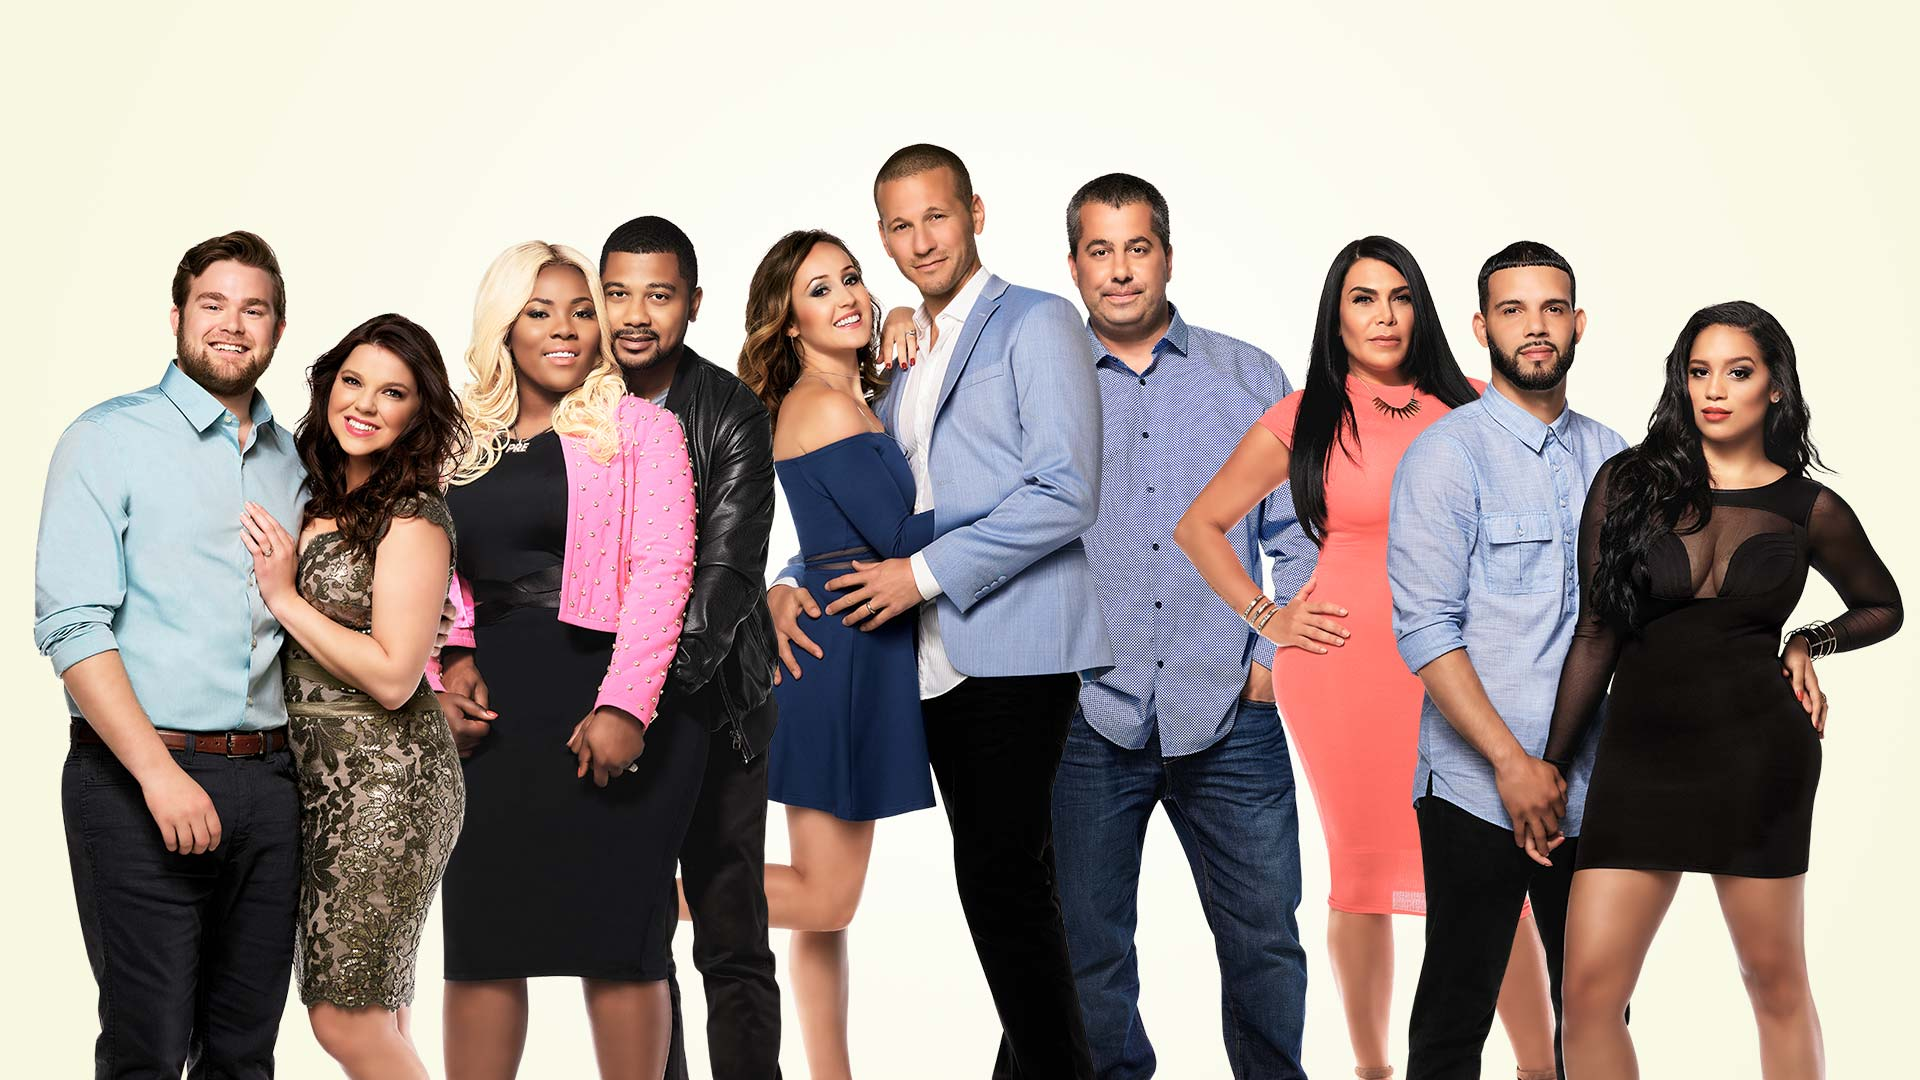 'Marriage Boot Camp' Cast Revealed: Tara Reid, 'Bachelor ...